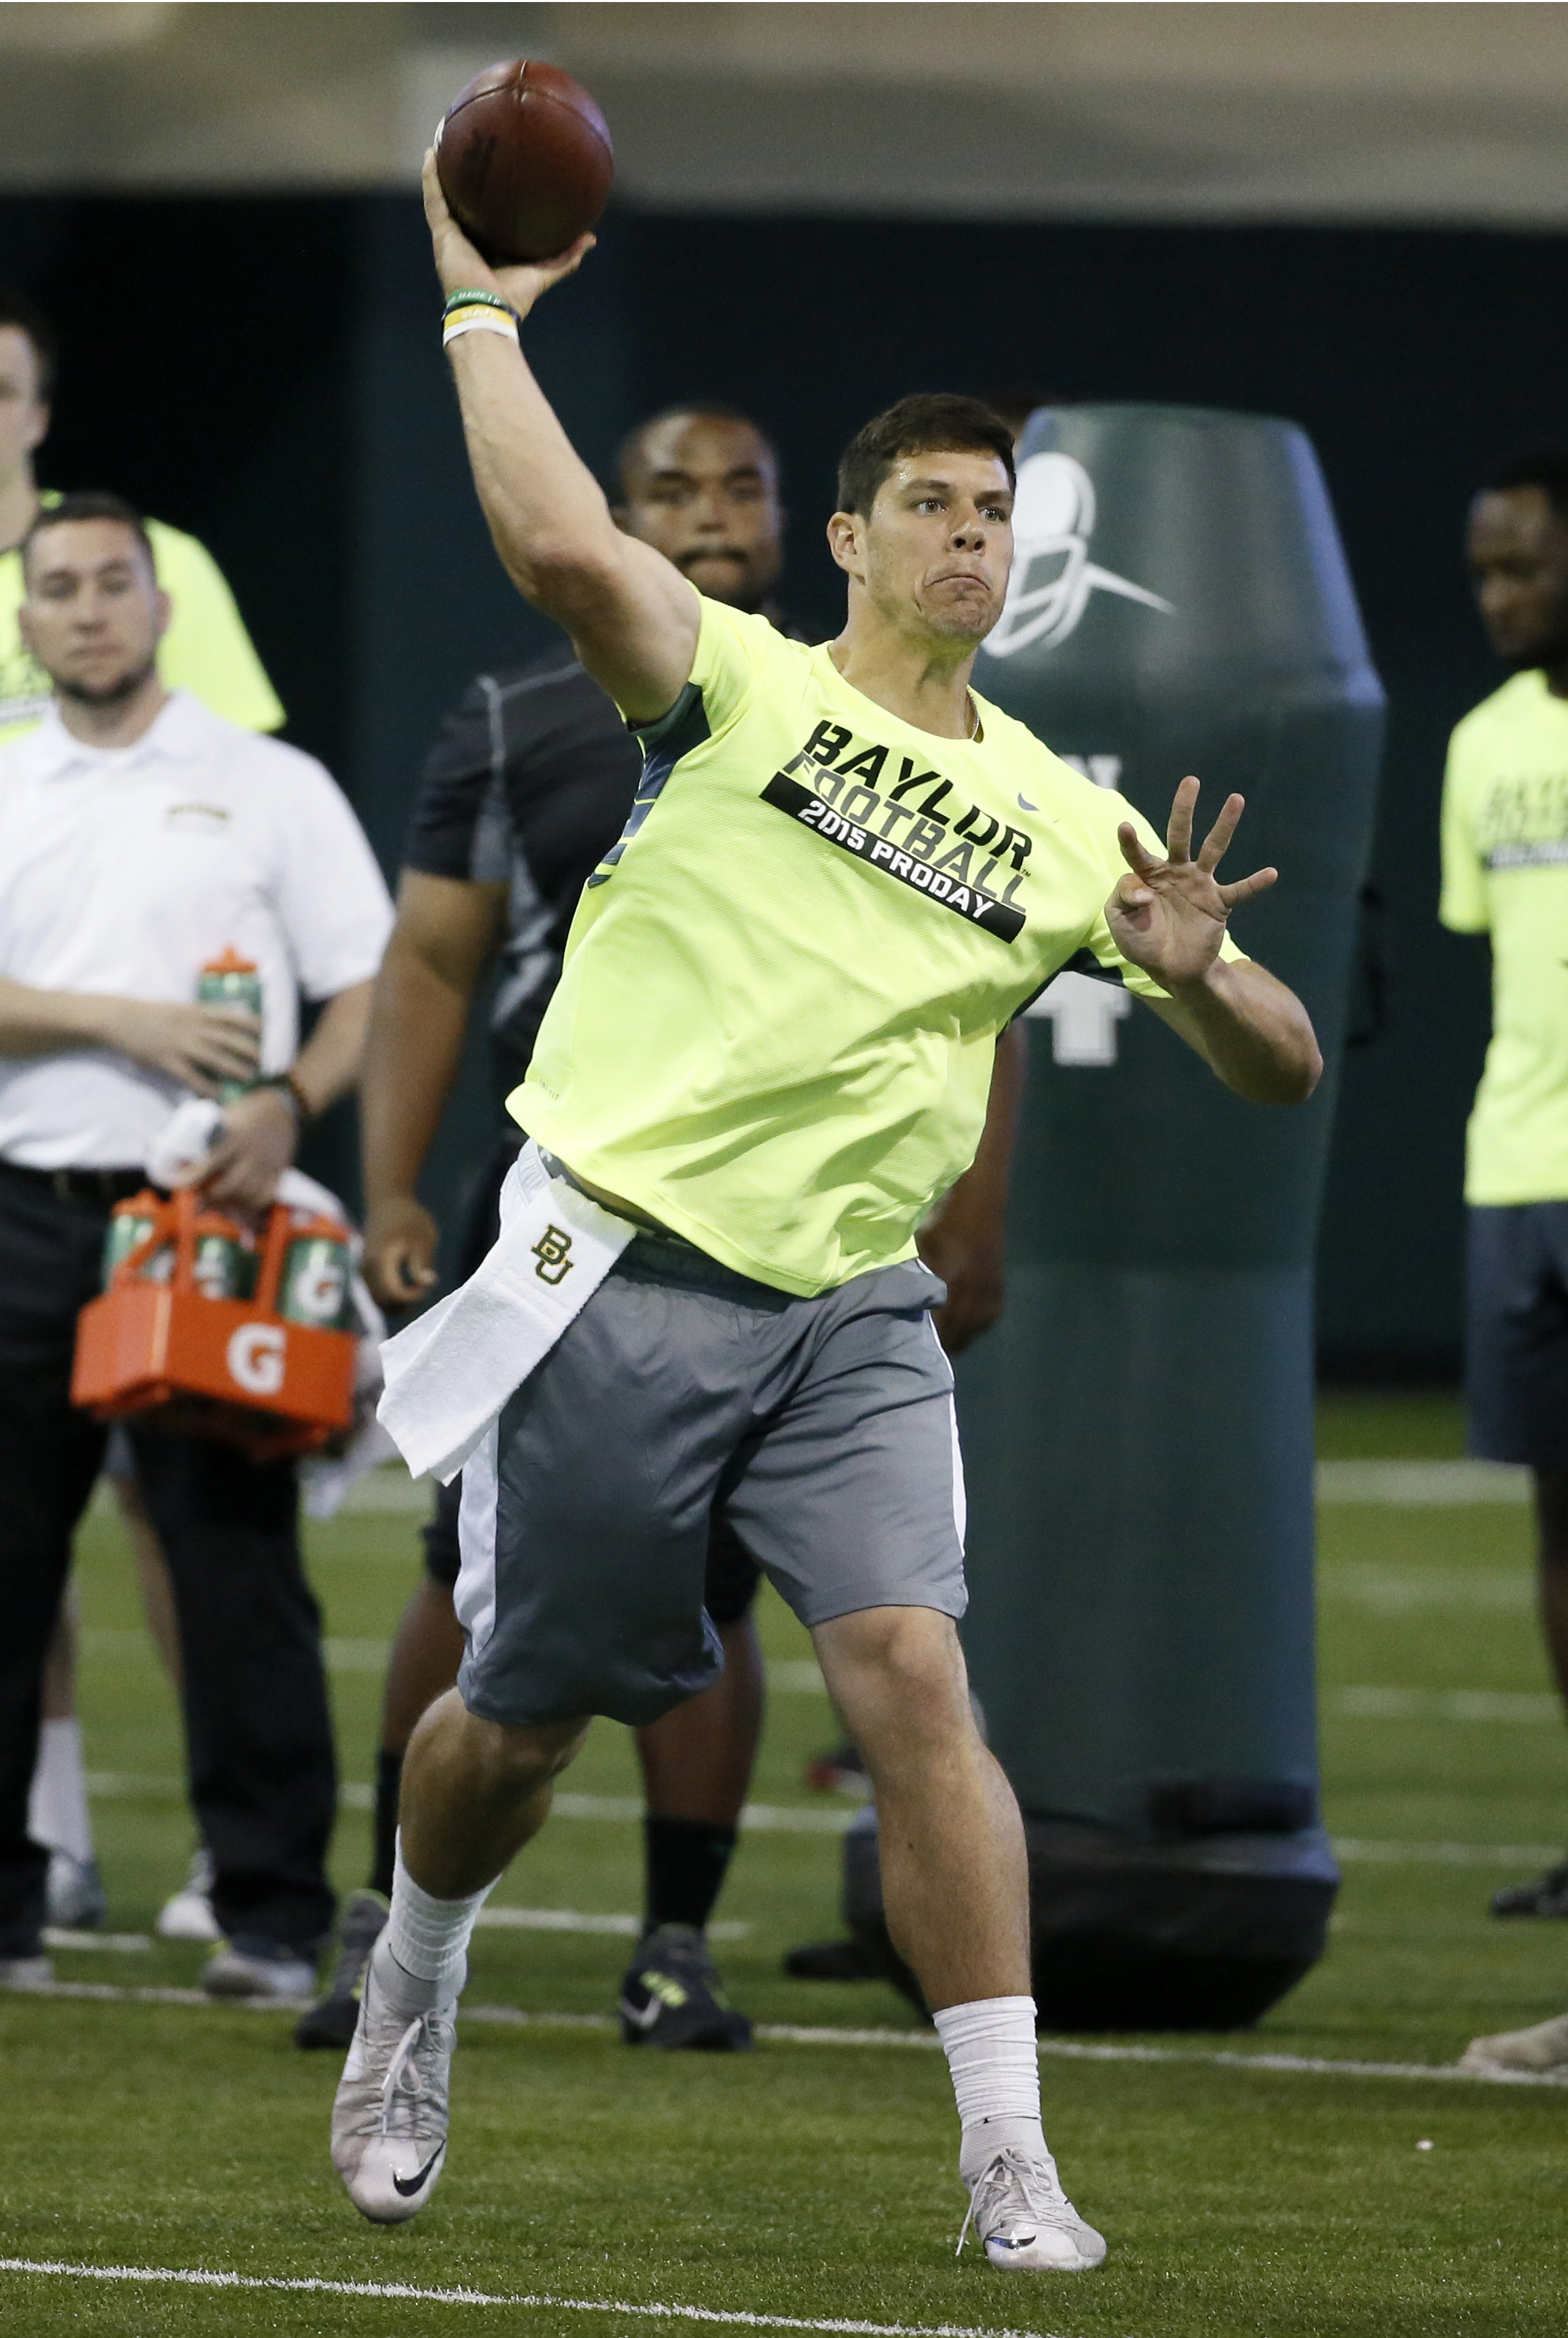 Quarterback Bryce Petty passes as he works out for scouts at Baylor NFL football Pro Day in Waco, Texas, Wednesday March 18, 2015. (AP Photo/Tony Gutierrez)